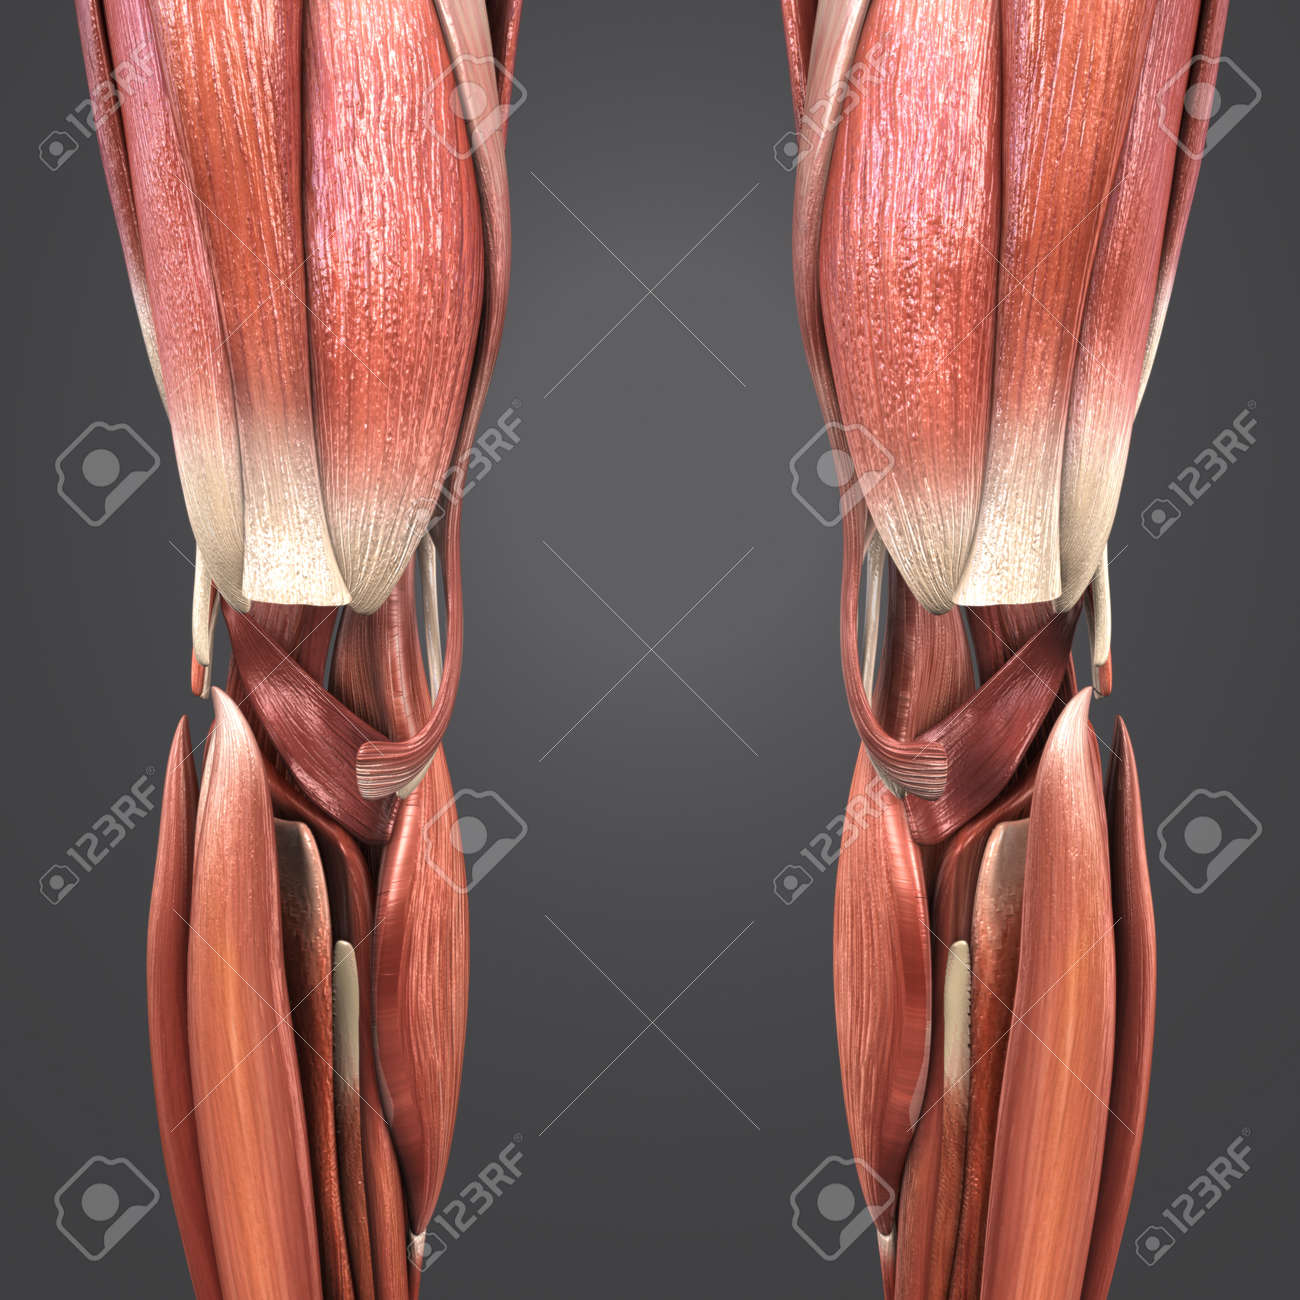 Knee Joint Muscle Anatomy Anterior View Stock Photo, Picture And ...